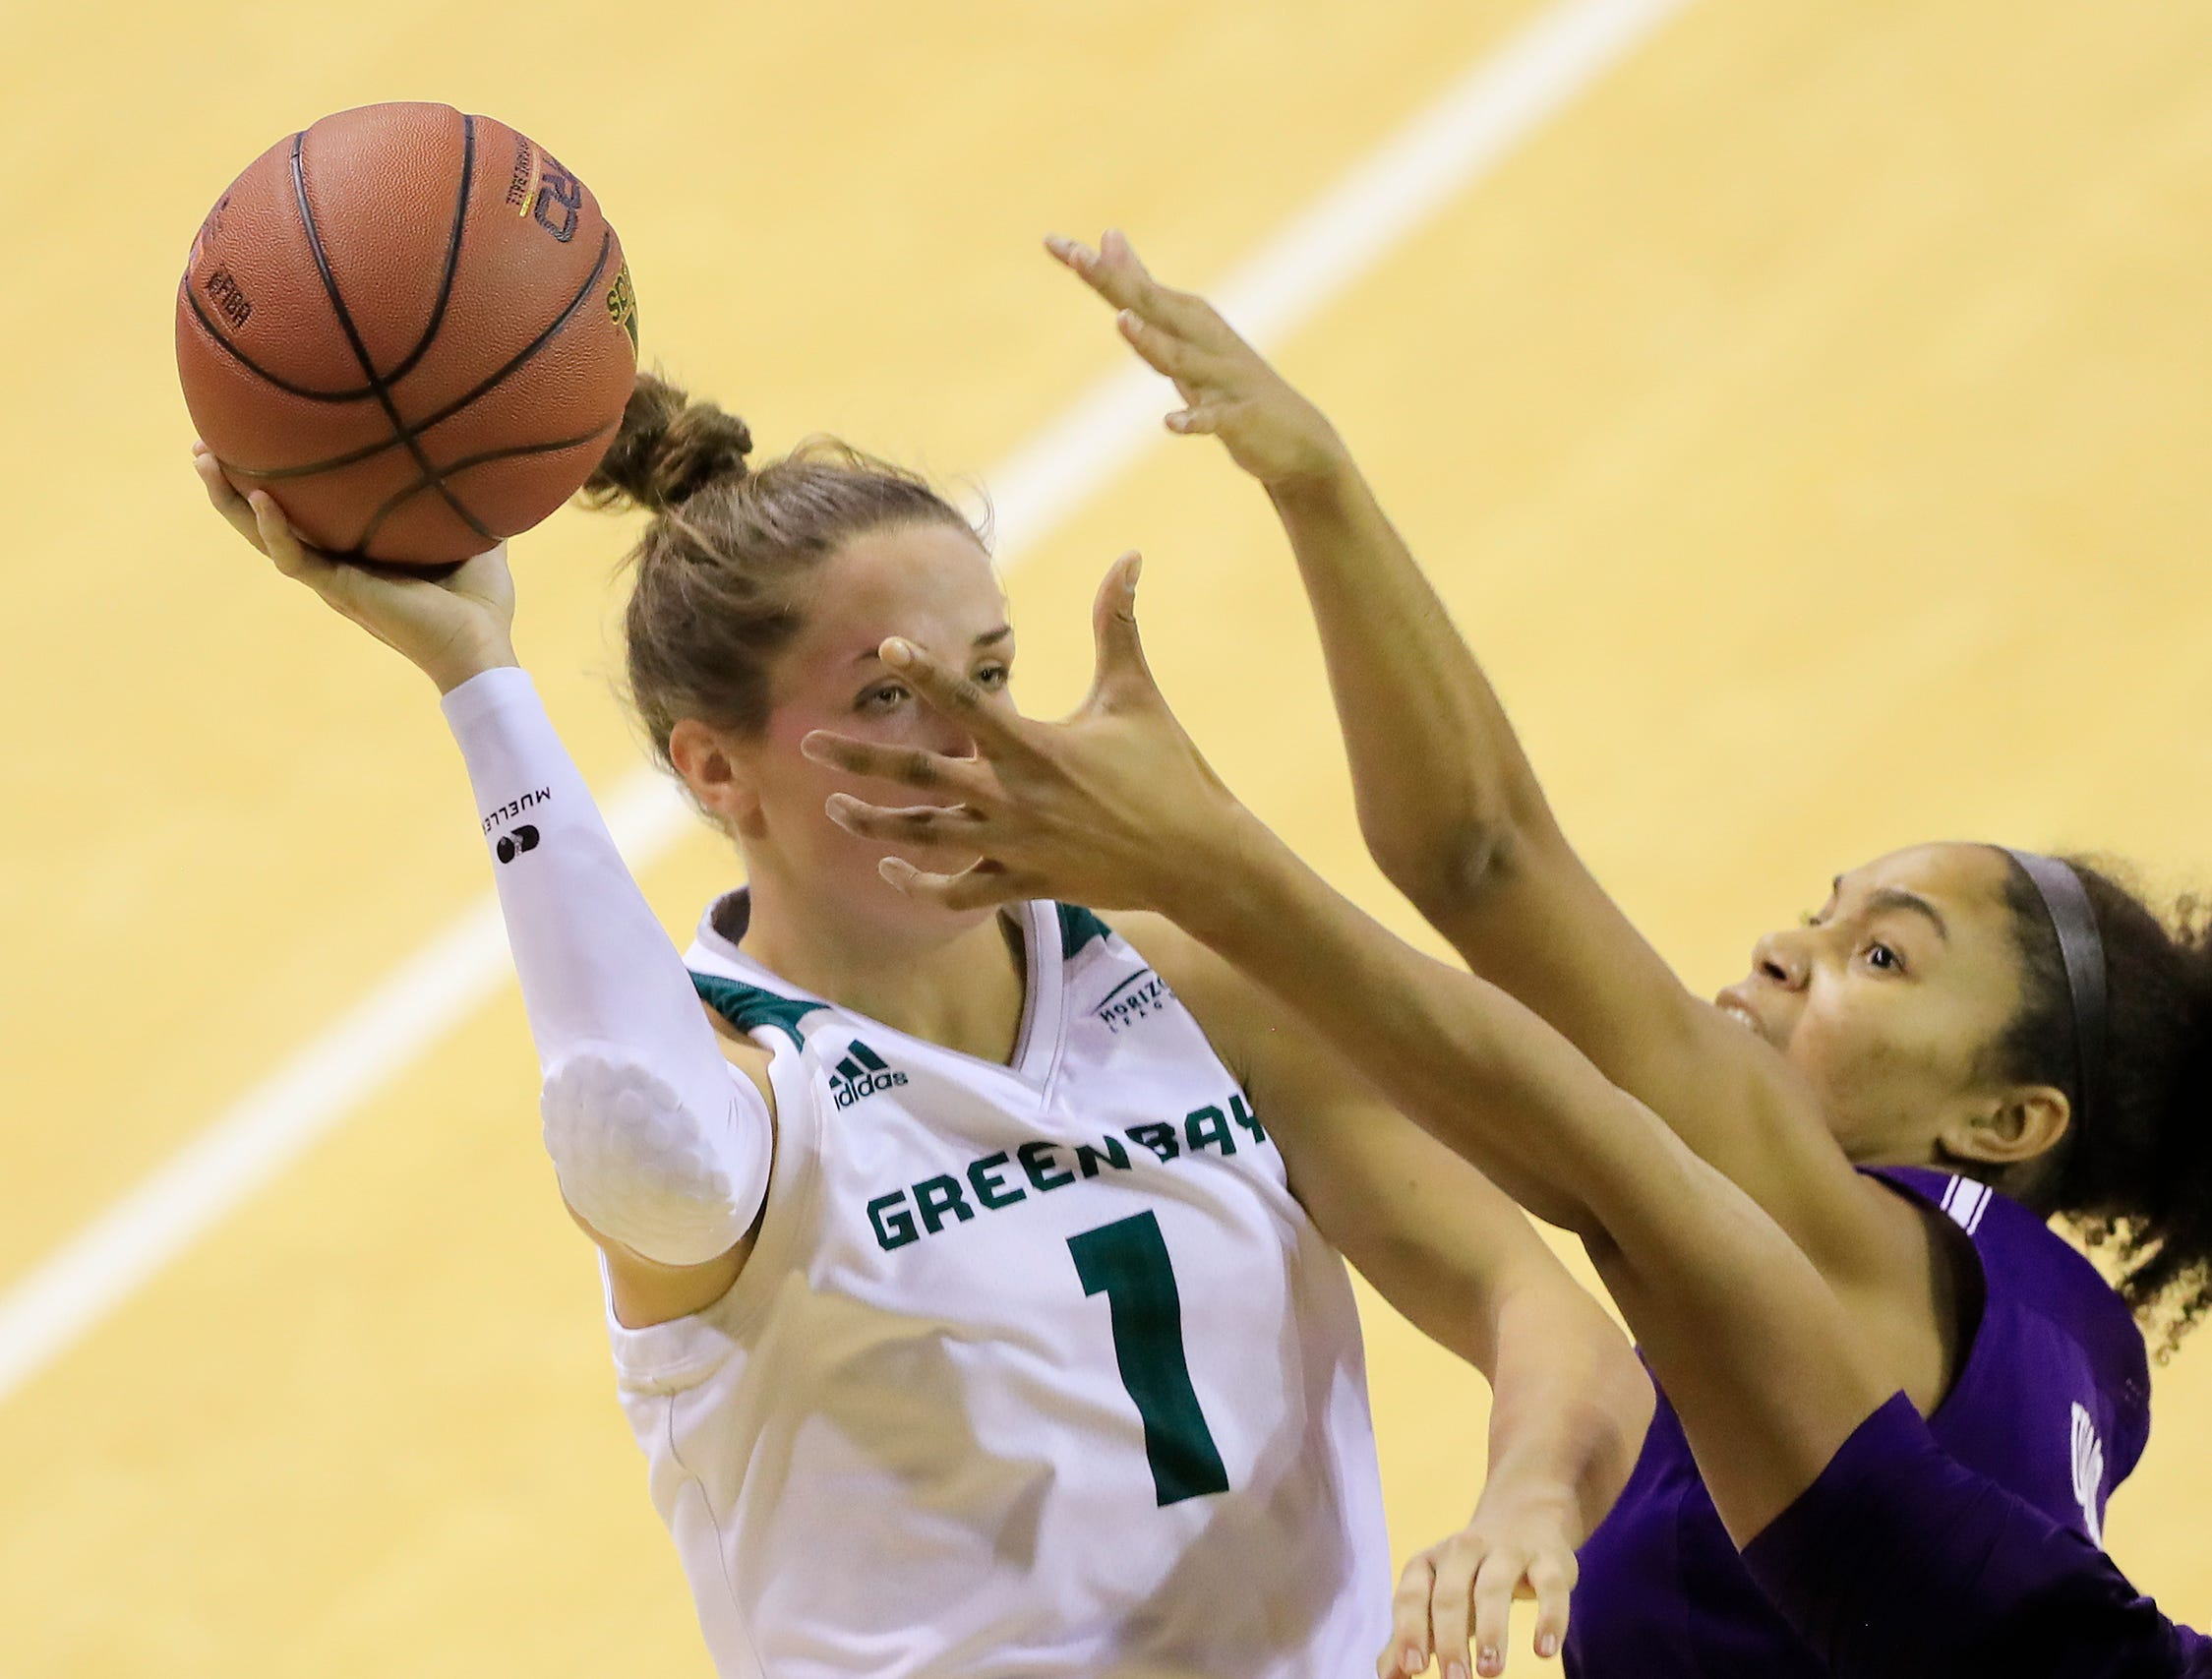 Green Bay Phoenix guard Jen Wellnitz (1) shoots under pressure against the Northwestern Wildcats in a women's NCAA basketball game at the Kress Center on Tuesday, November 6, 2018 in Green Bay, Wis.